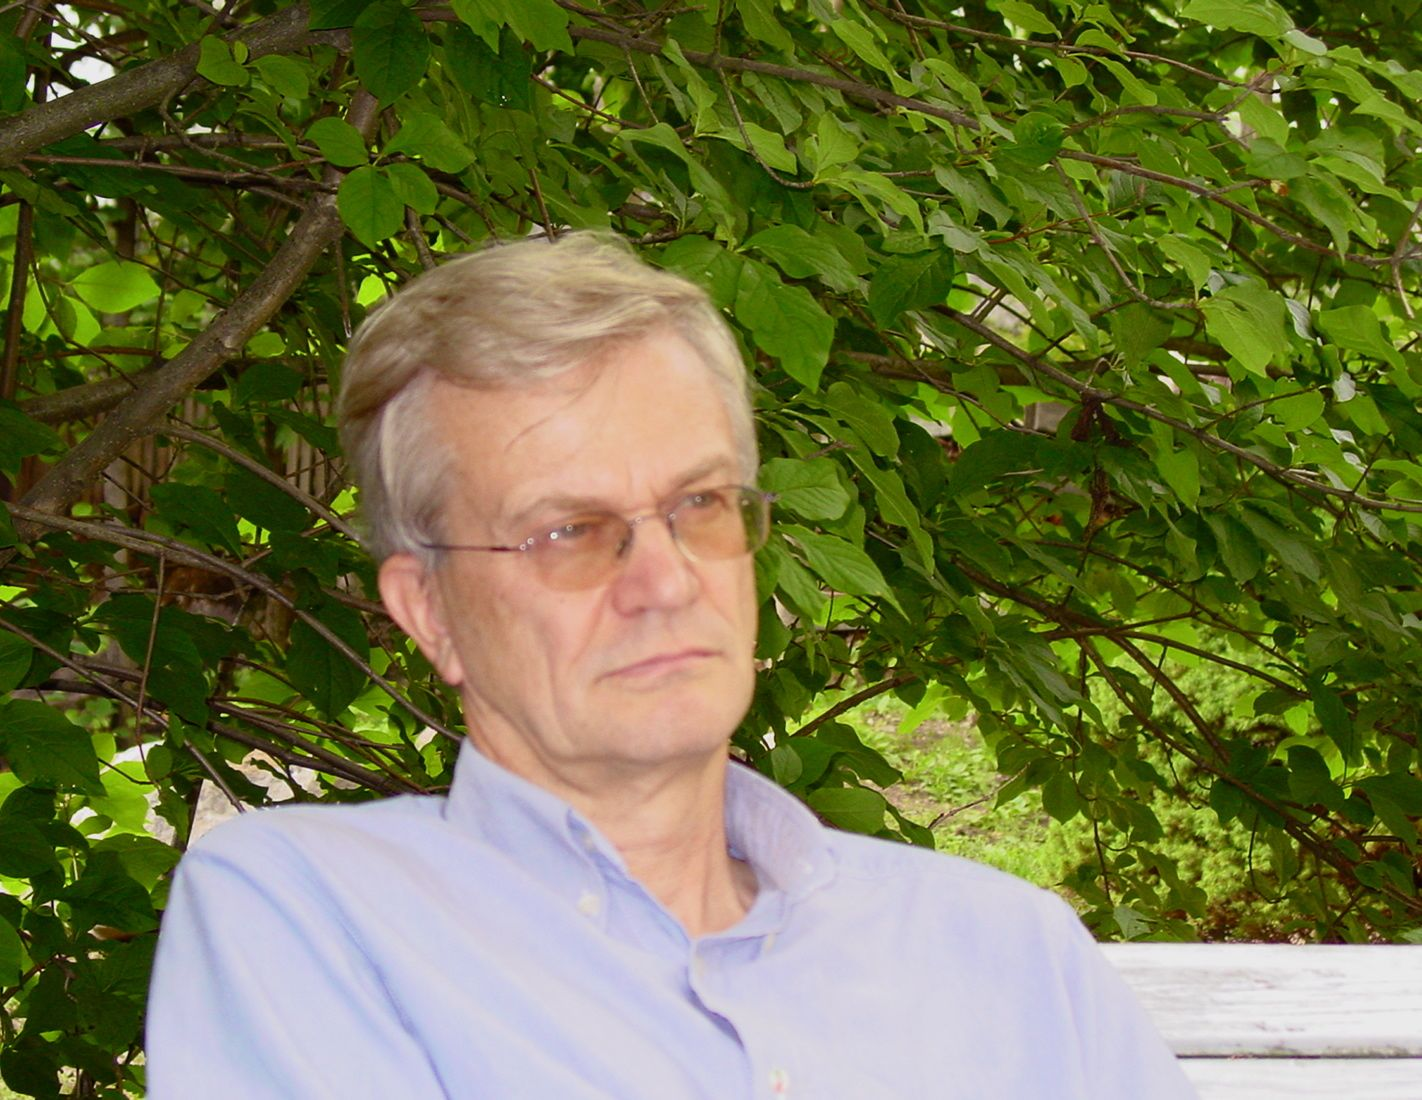 Professor emeritus Jan Otto Andersson